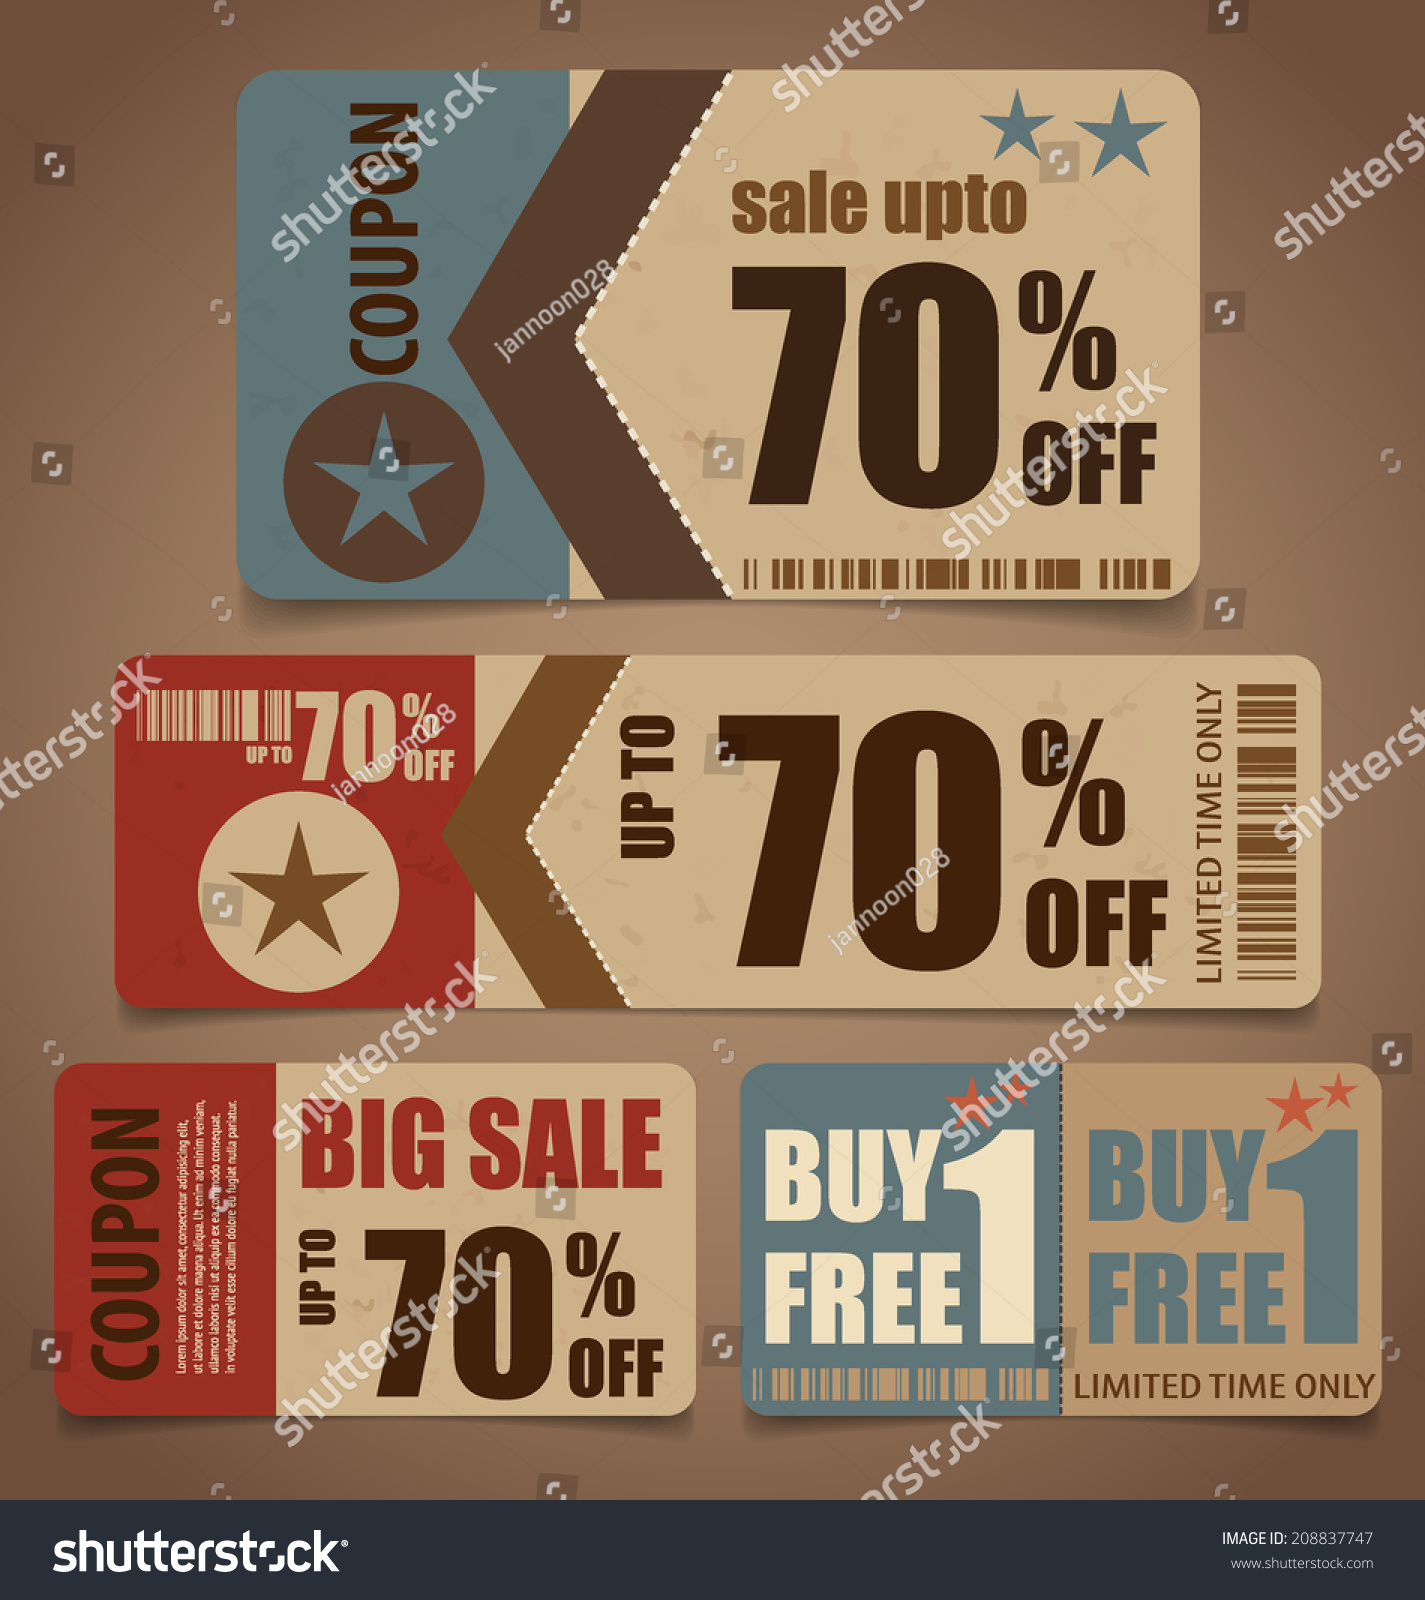 Vintage stock coupons